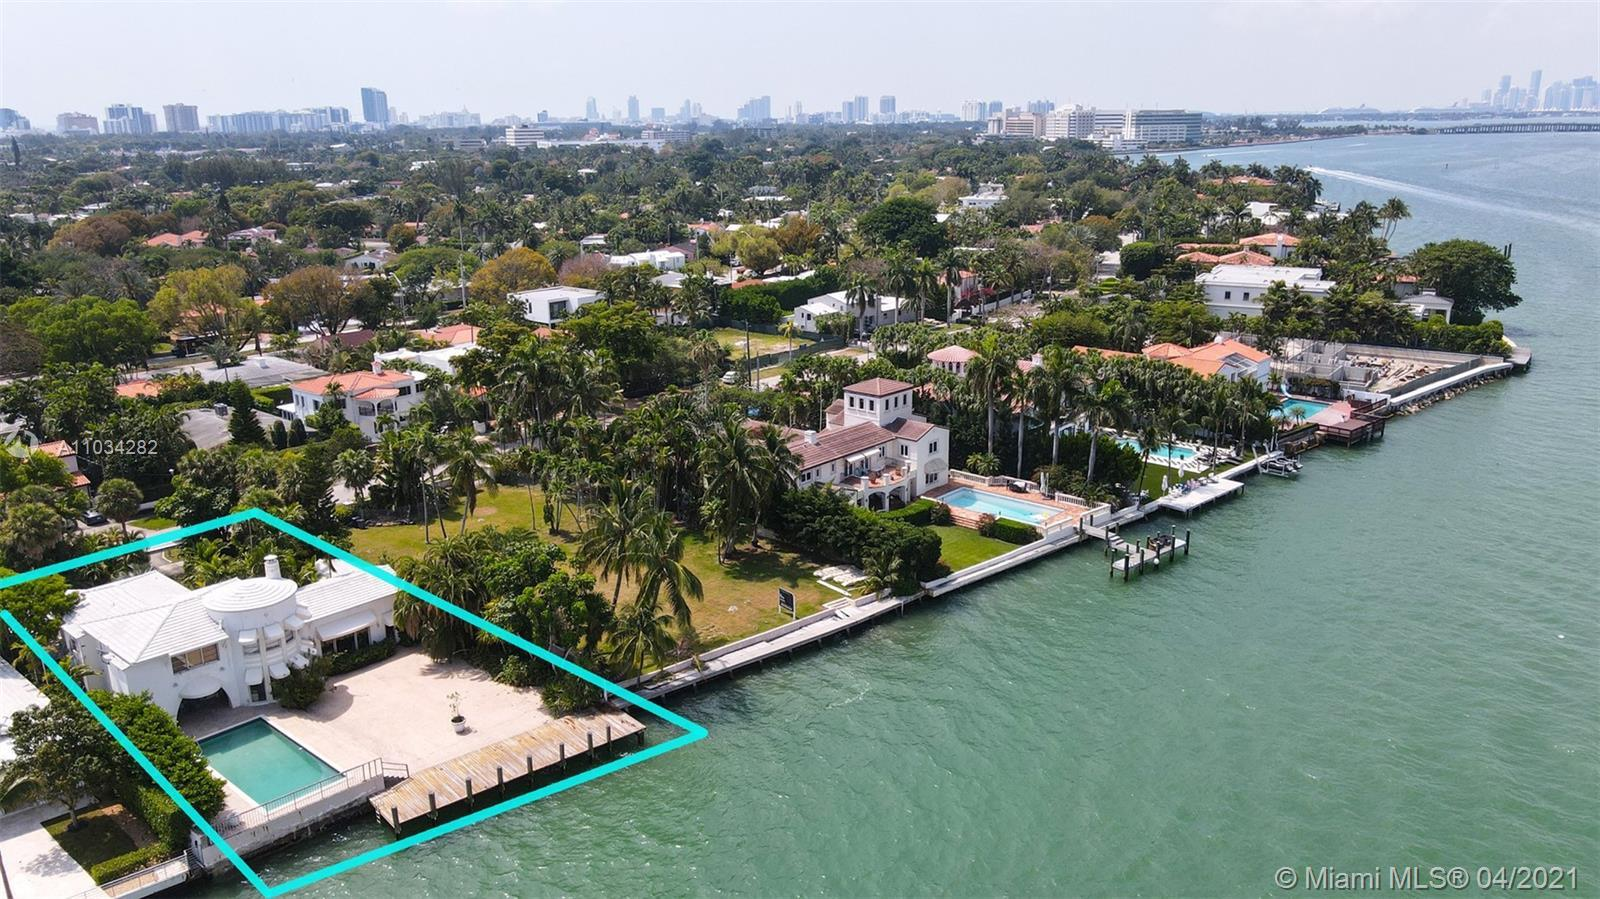 This premier waterfront estate features an unobstructed wide Biscayne bay view with one of the large